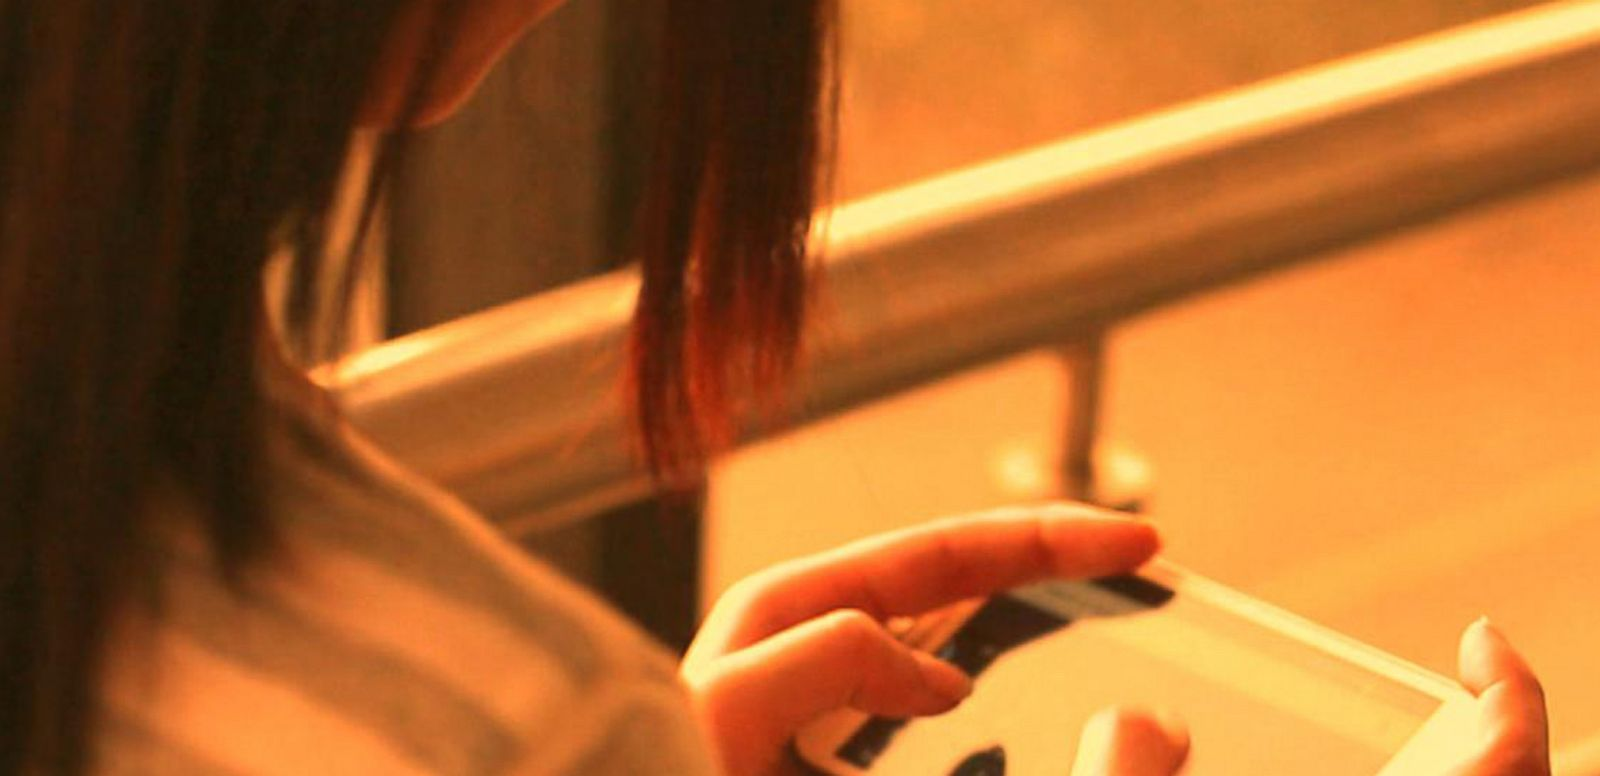 VIDEO: Students Allegedly Pressured Female Classmates to Text Naked Pictures